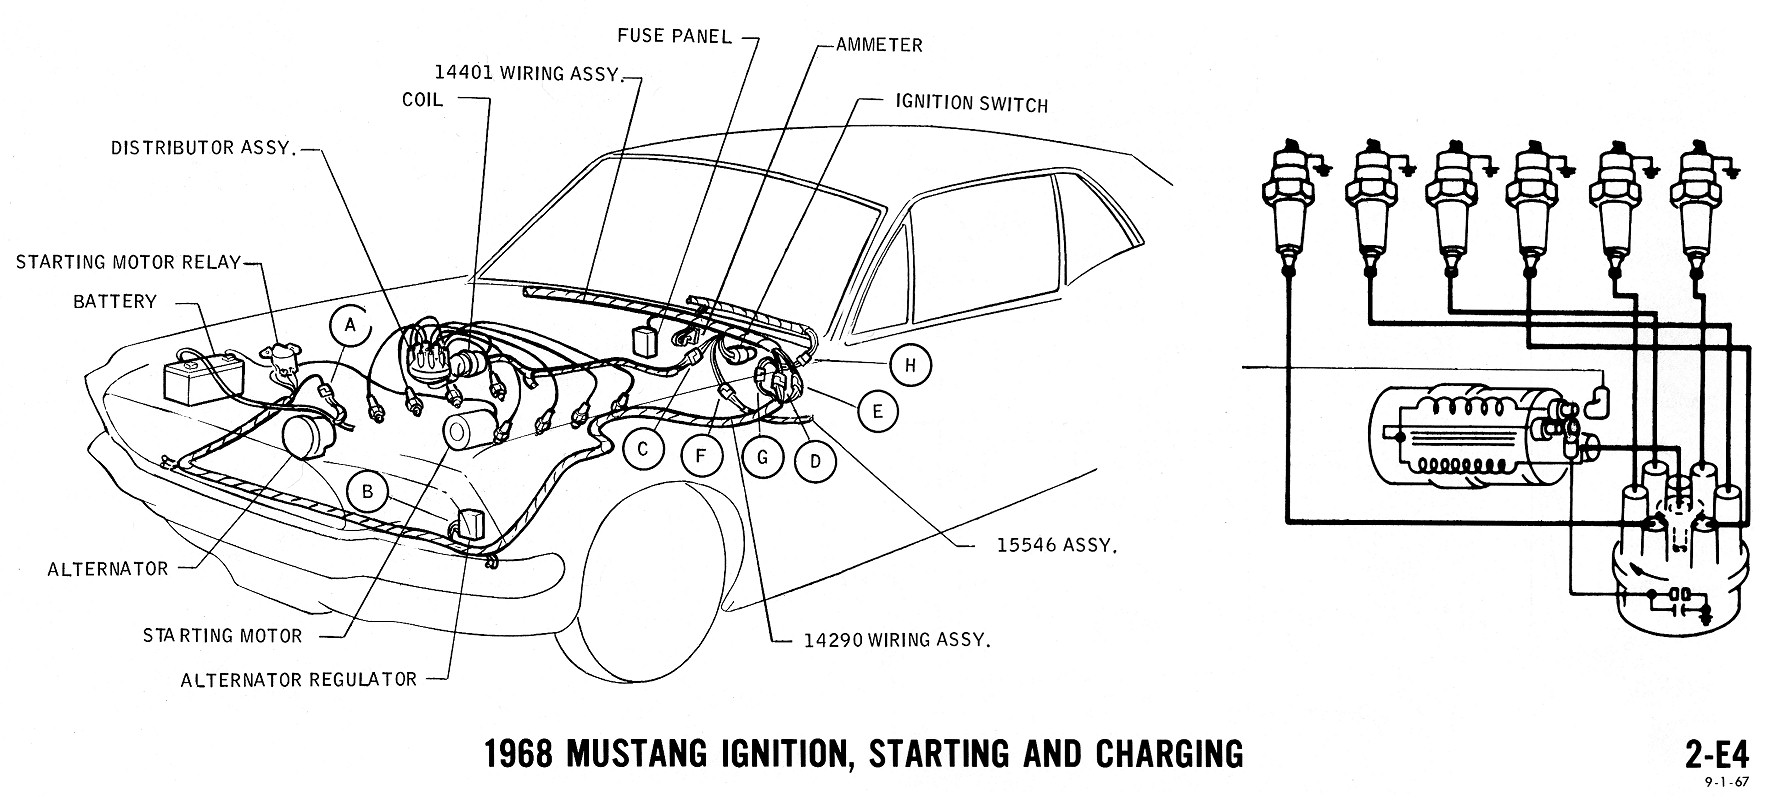 1968 mustang wiring diagrams and vacuum schematics Mustangs Plus Restomod  2006 Mustang Convertible Modified Mustang Magazine